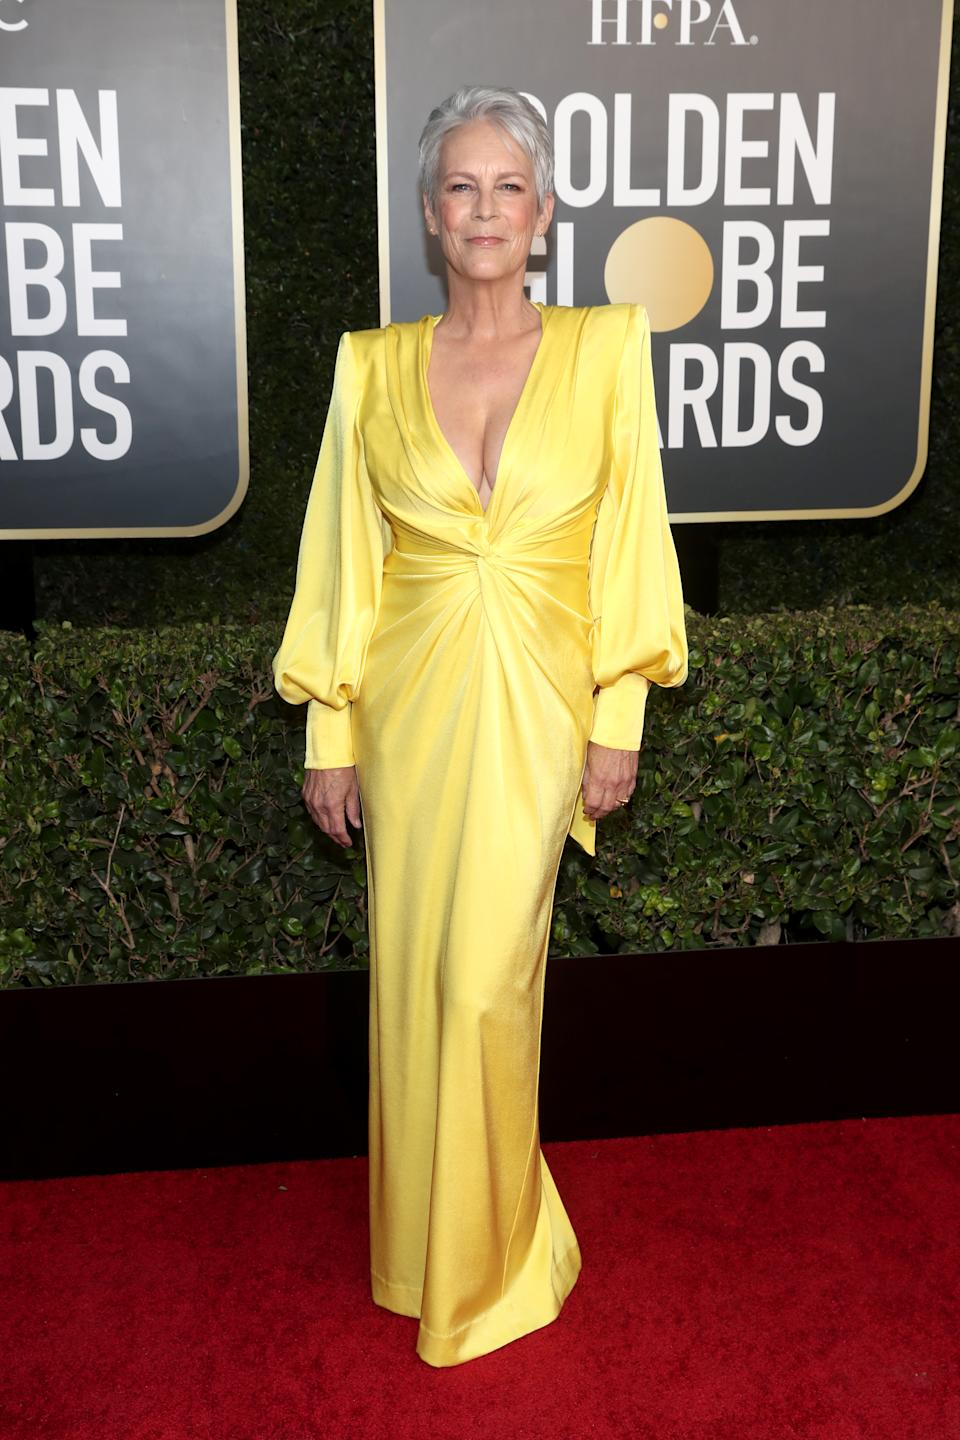 Jamie Lee Curtis attends the 78th Annual Golden Globe Awards held at The Beverly Hilton and broadcast on February 28, 2021 in Beverly Hills, California